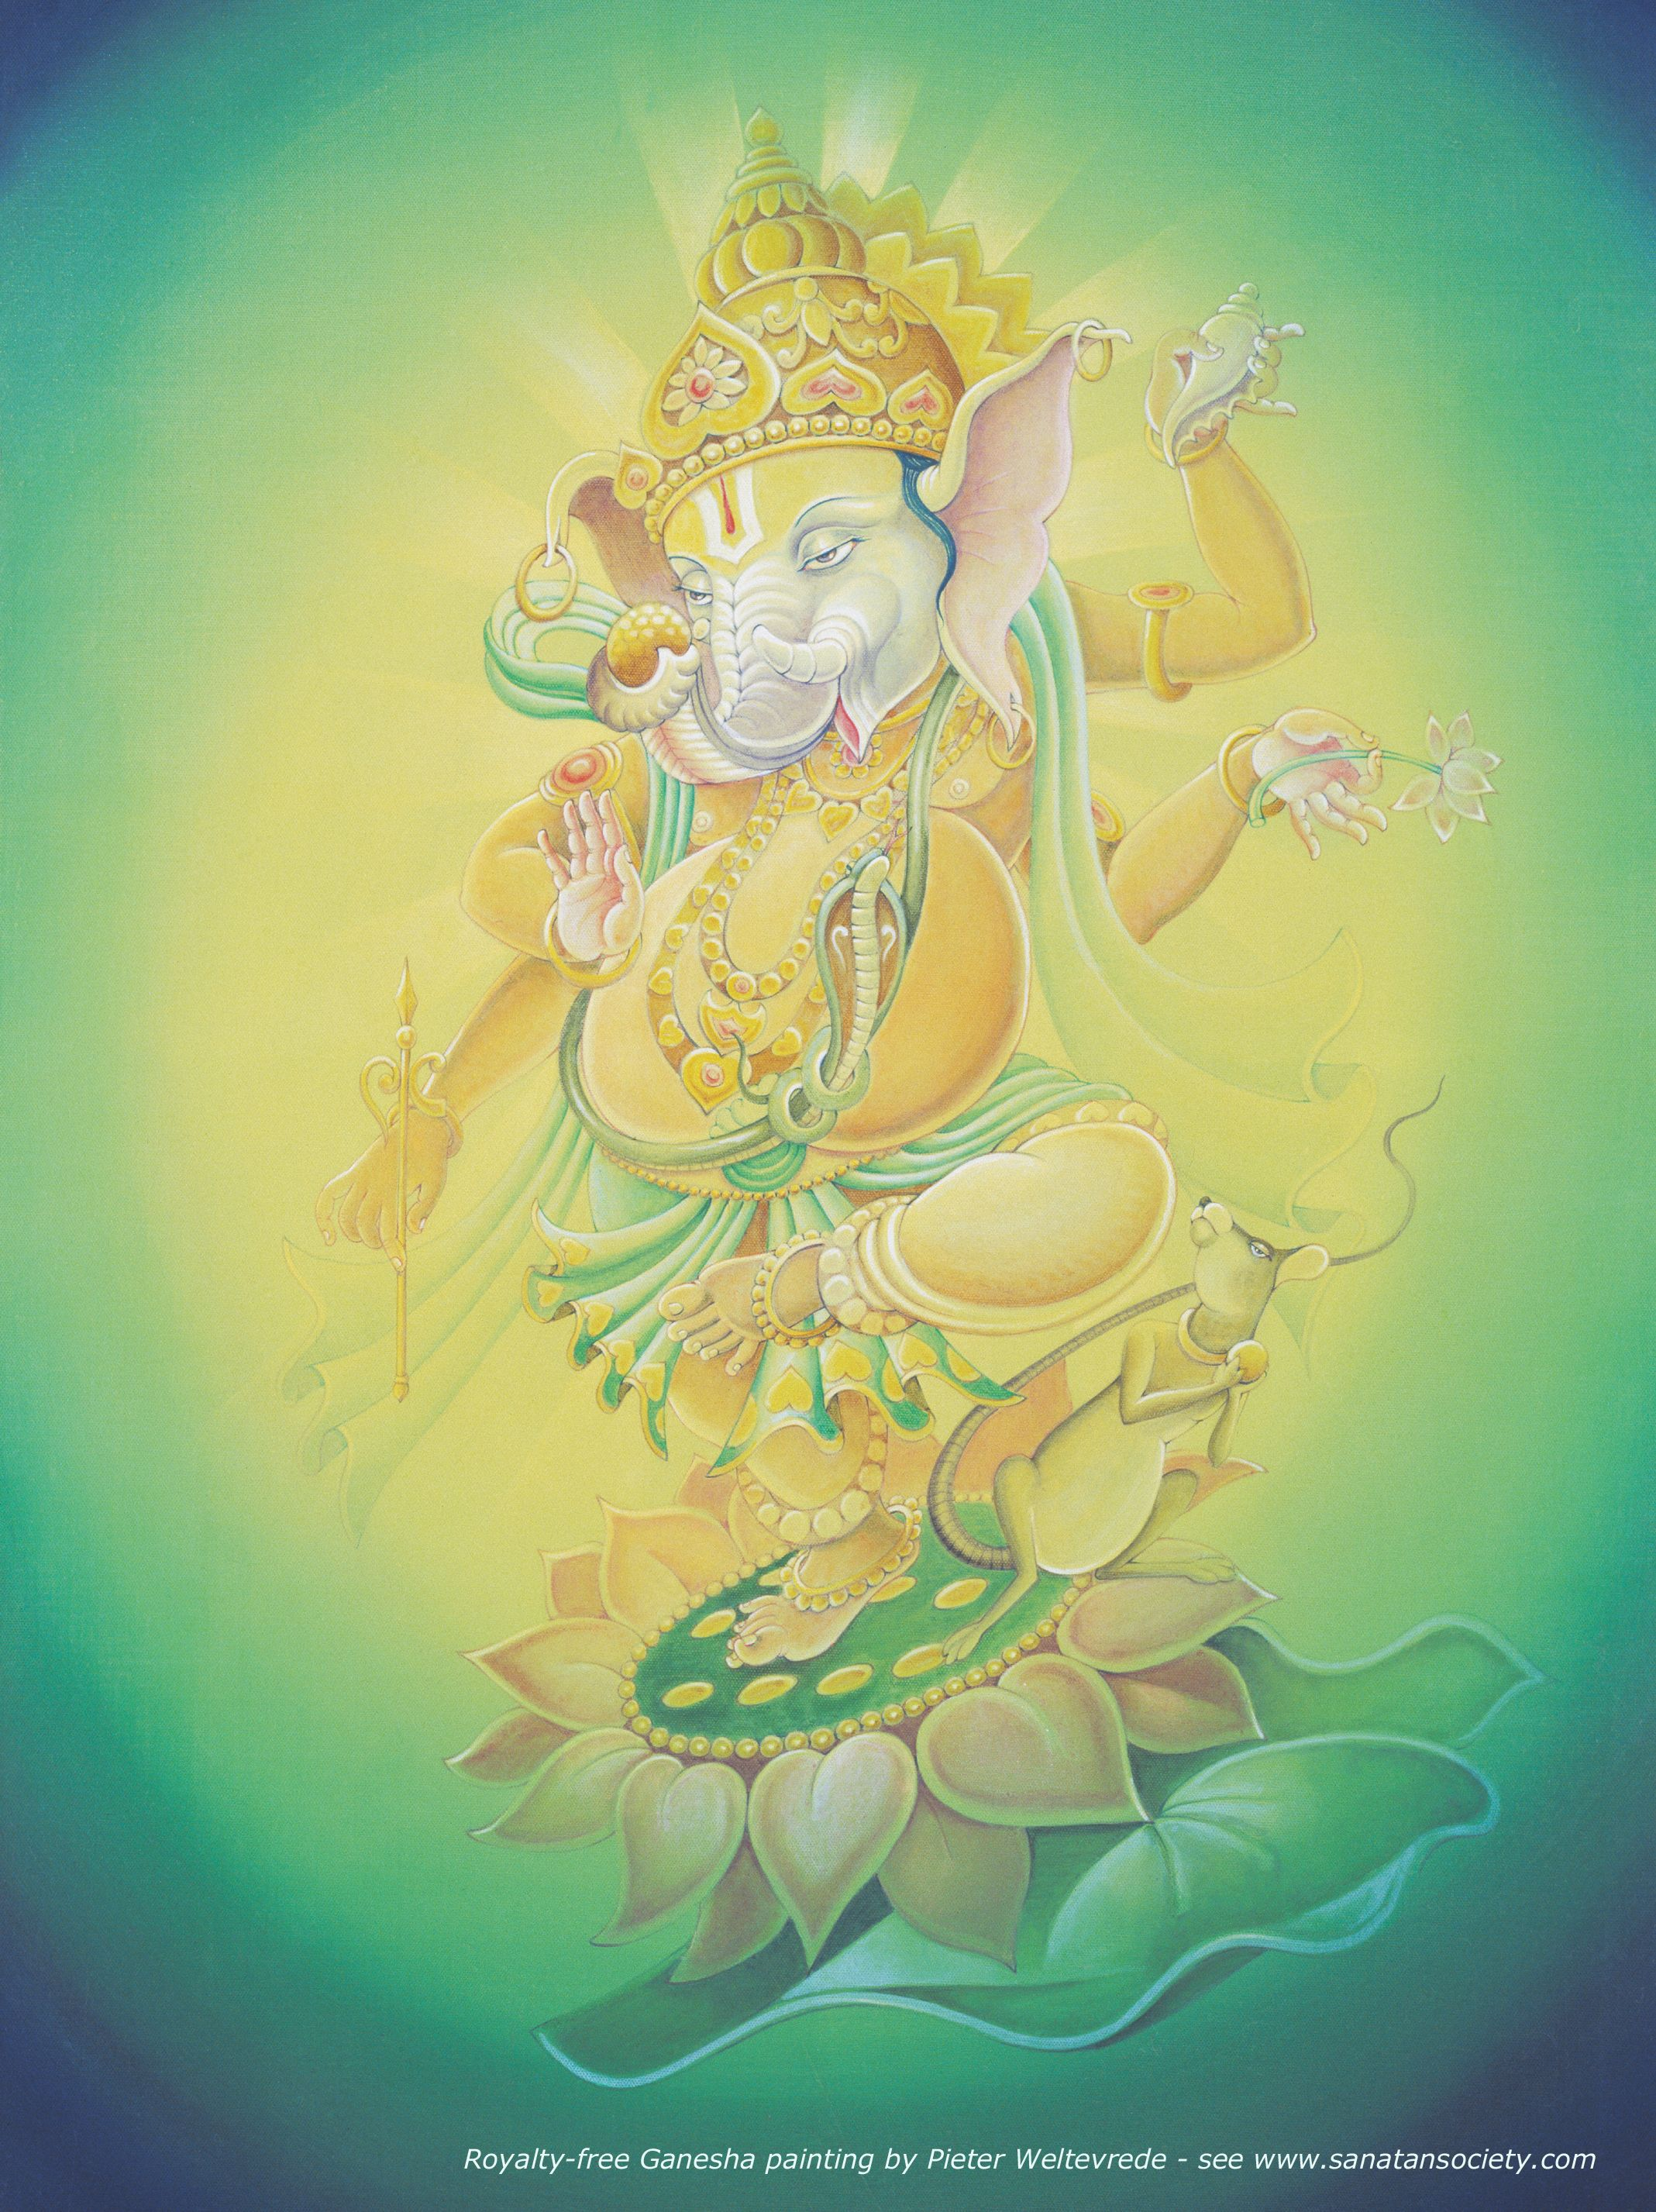 Ganesh By Pieter Weltevrede HttpenwikipediaorgwikiGanesha - Wikipedia royalty free images